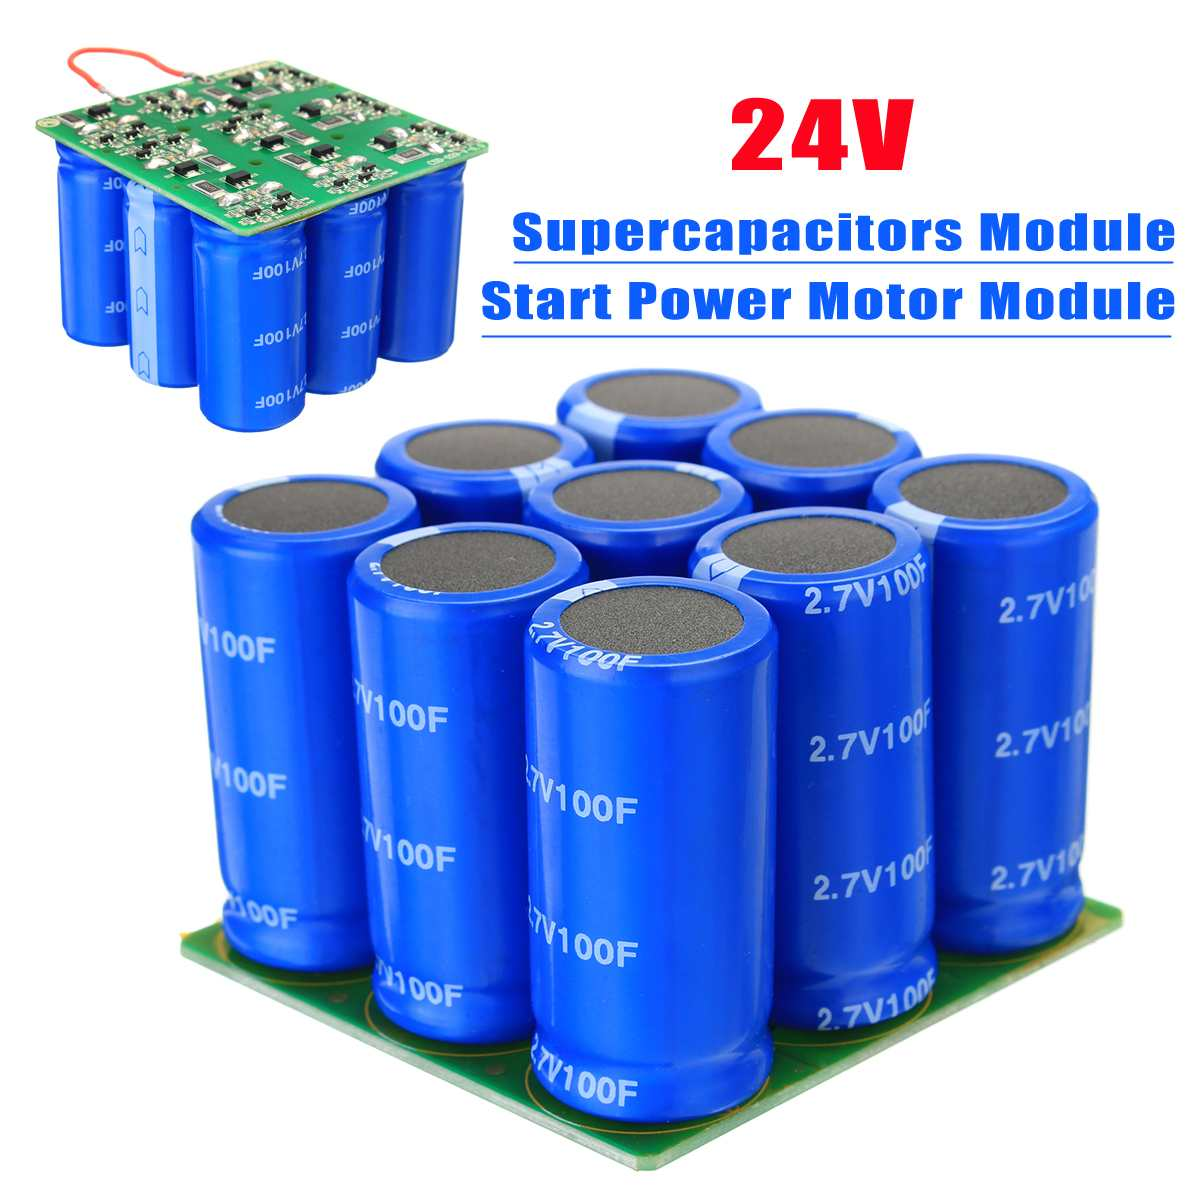 24V Supercapacitors Module Start Power Motor Start Capacitor Module24V Supercapacitors Module Start Power Motor Start Capacitor Module